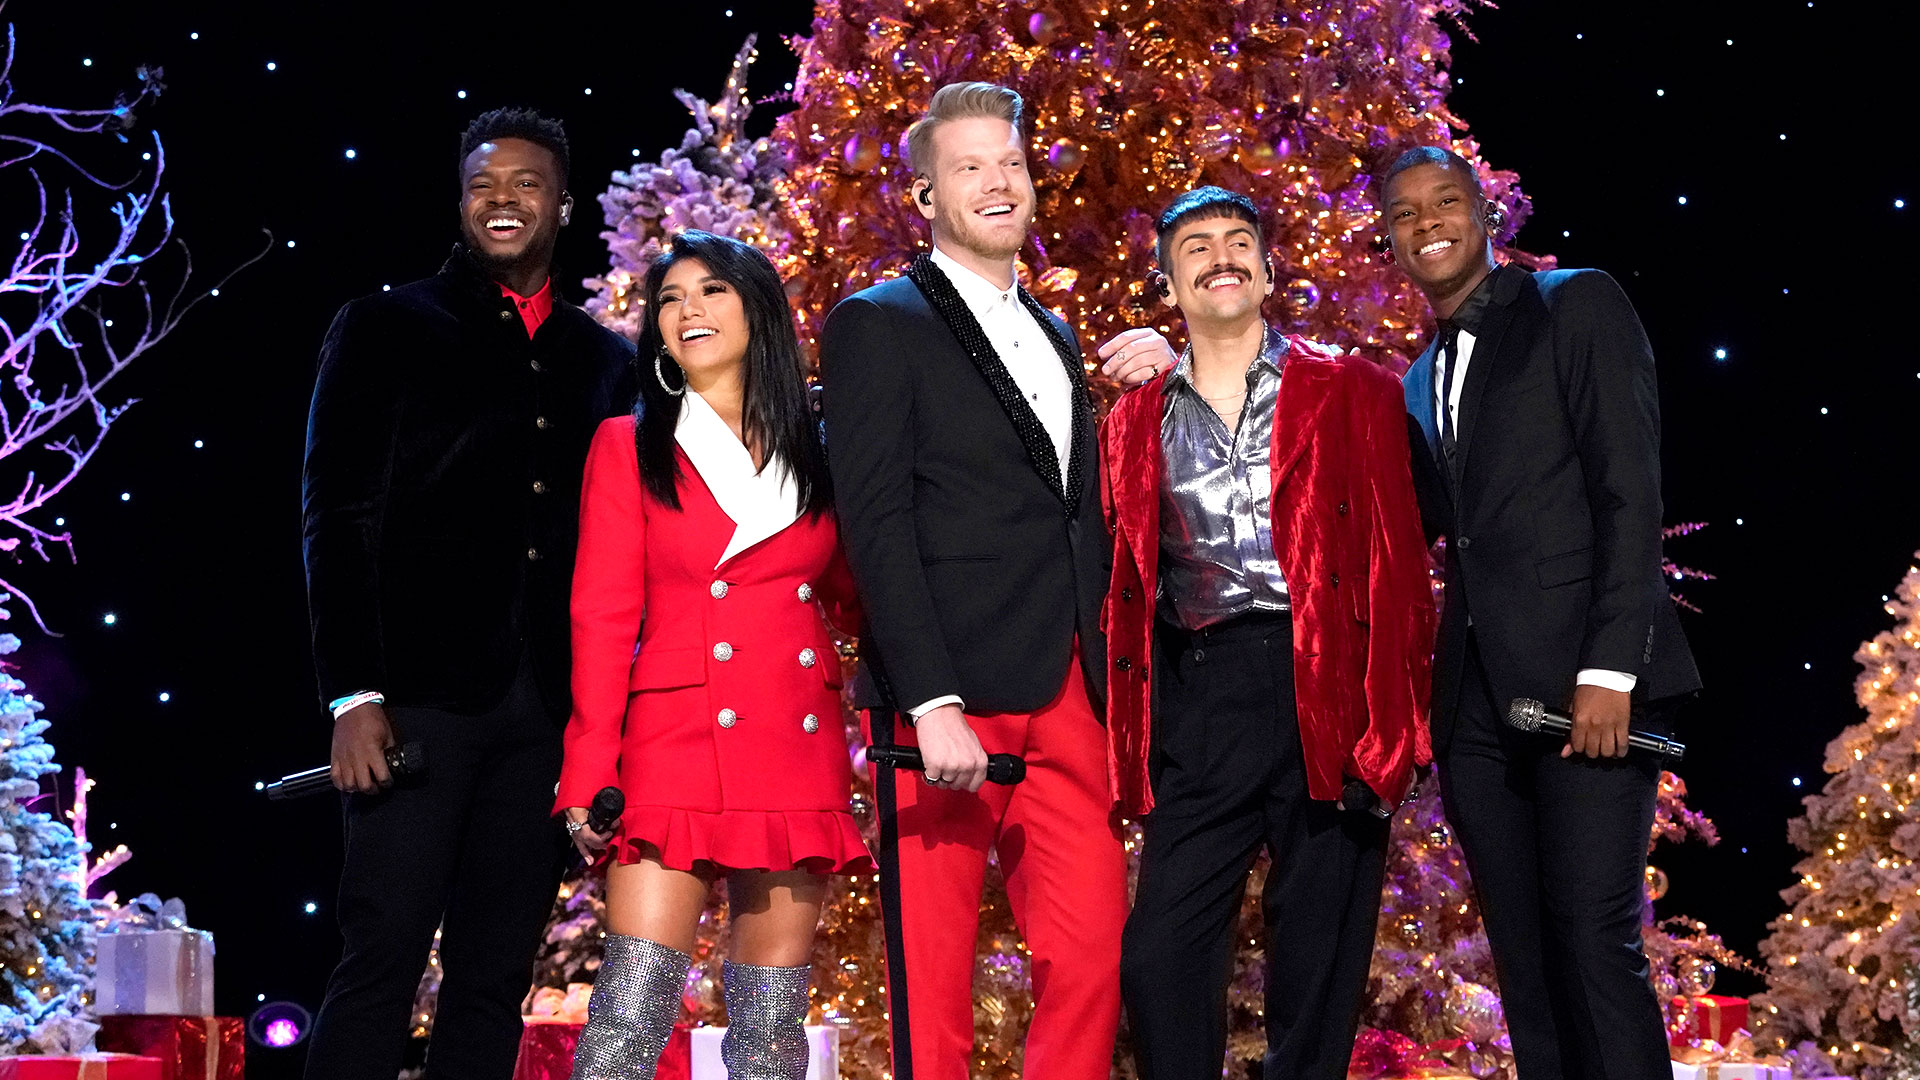 A Very Pentatonix Christmas 2020 Watch A Very Pentatonix Christmas Episode: A Very Pentatonix